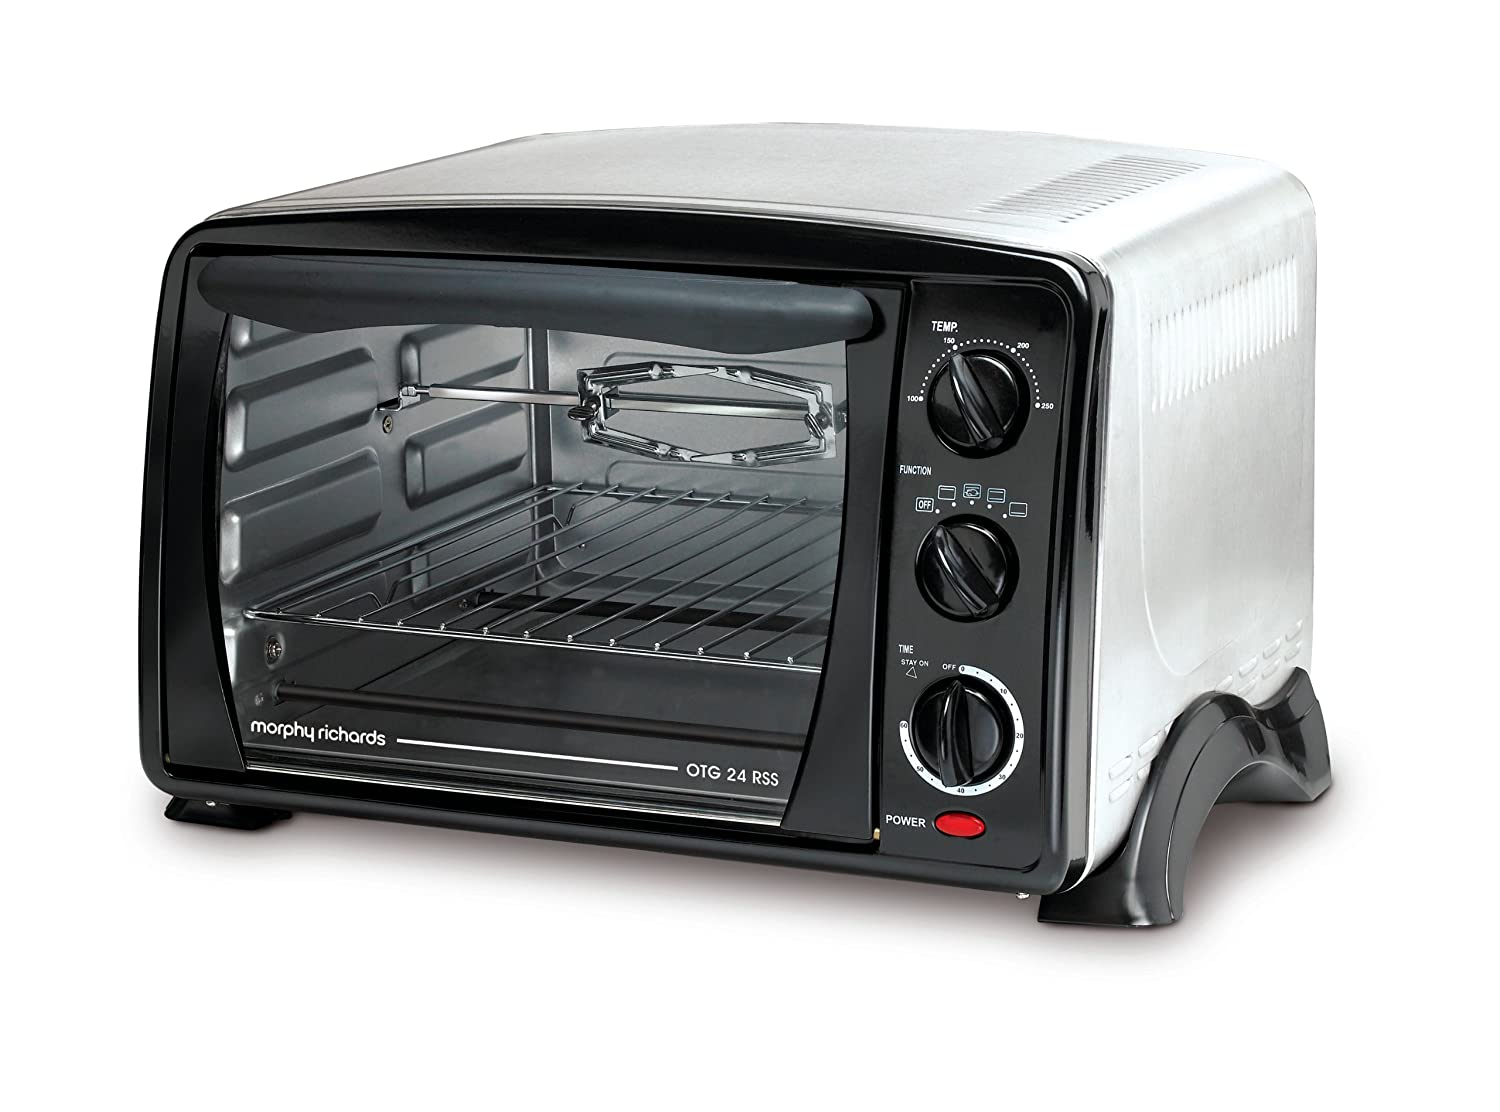 Countertop Oven Vs Conventional Oven : Conventional Oven vs Toaster Oven Steel Oven Toaster Grill